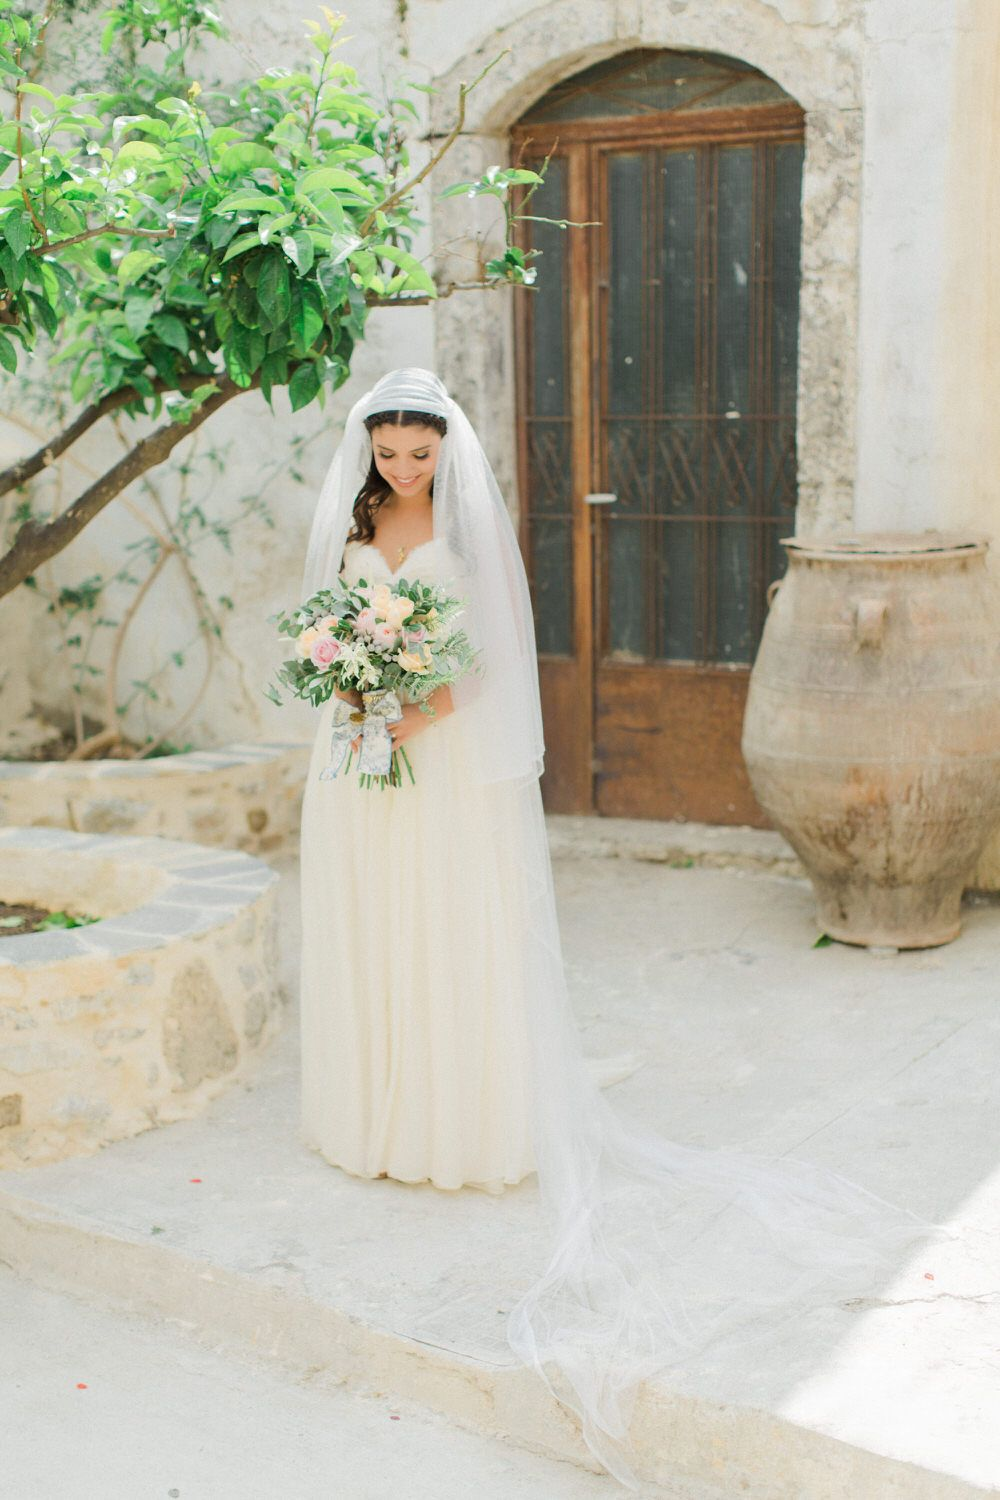 Traditional greek wedding with sarah seven wedding dress nude traditional greek wedding with sarah seven wedding dress nude bridesmaid dresses pastel rose bouquet ombrellifo Choice Image